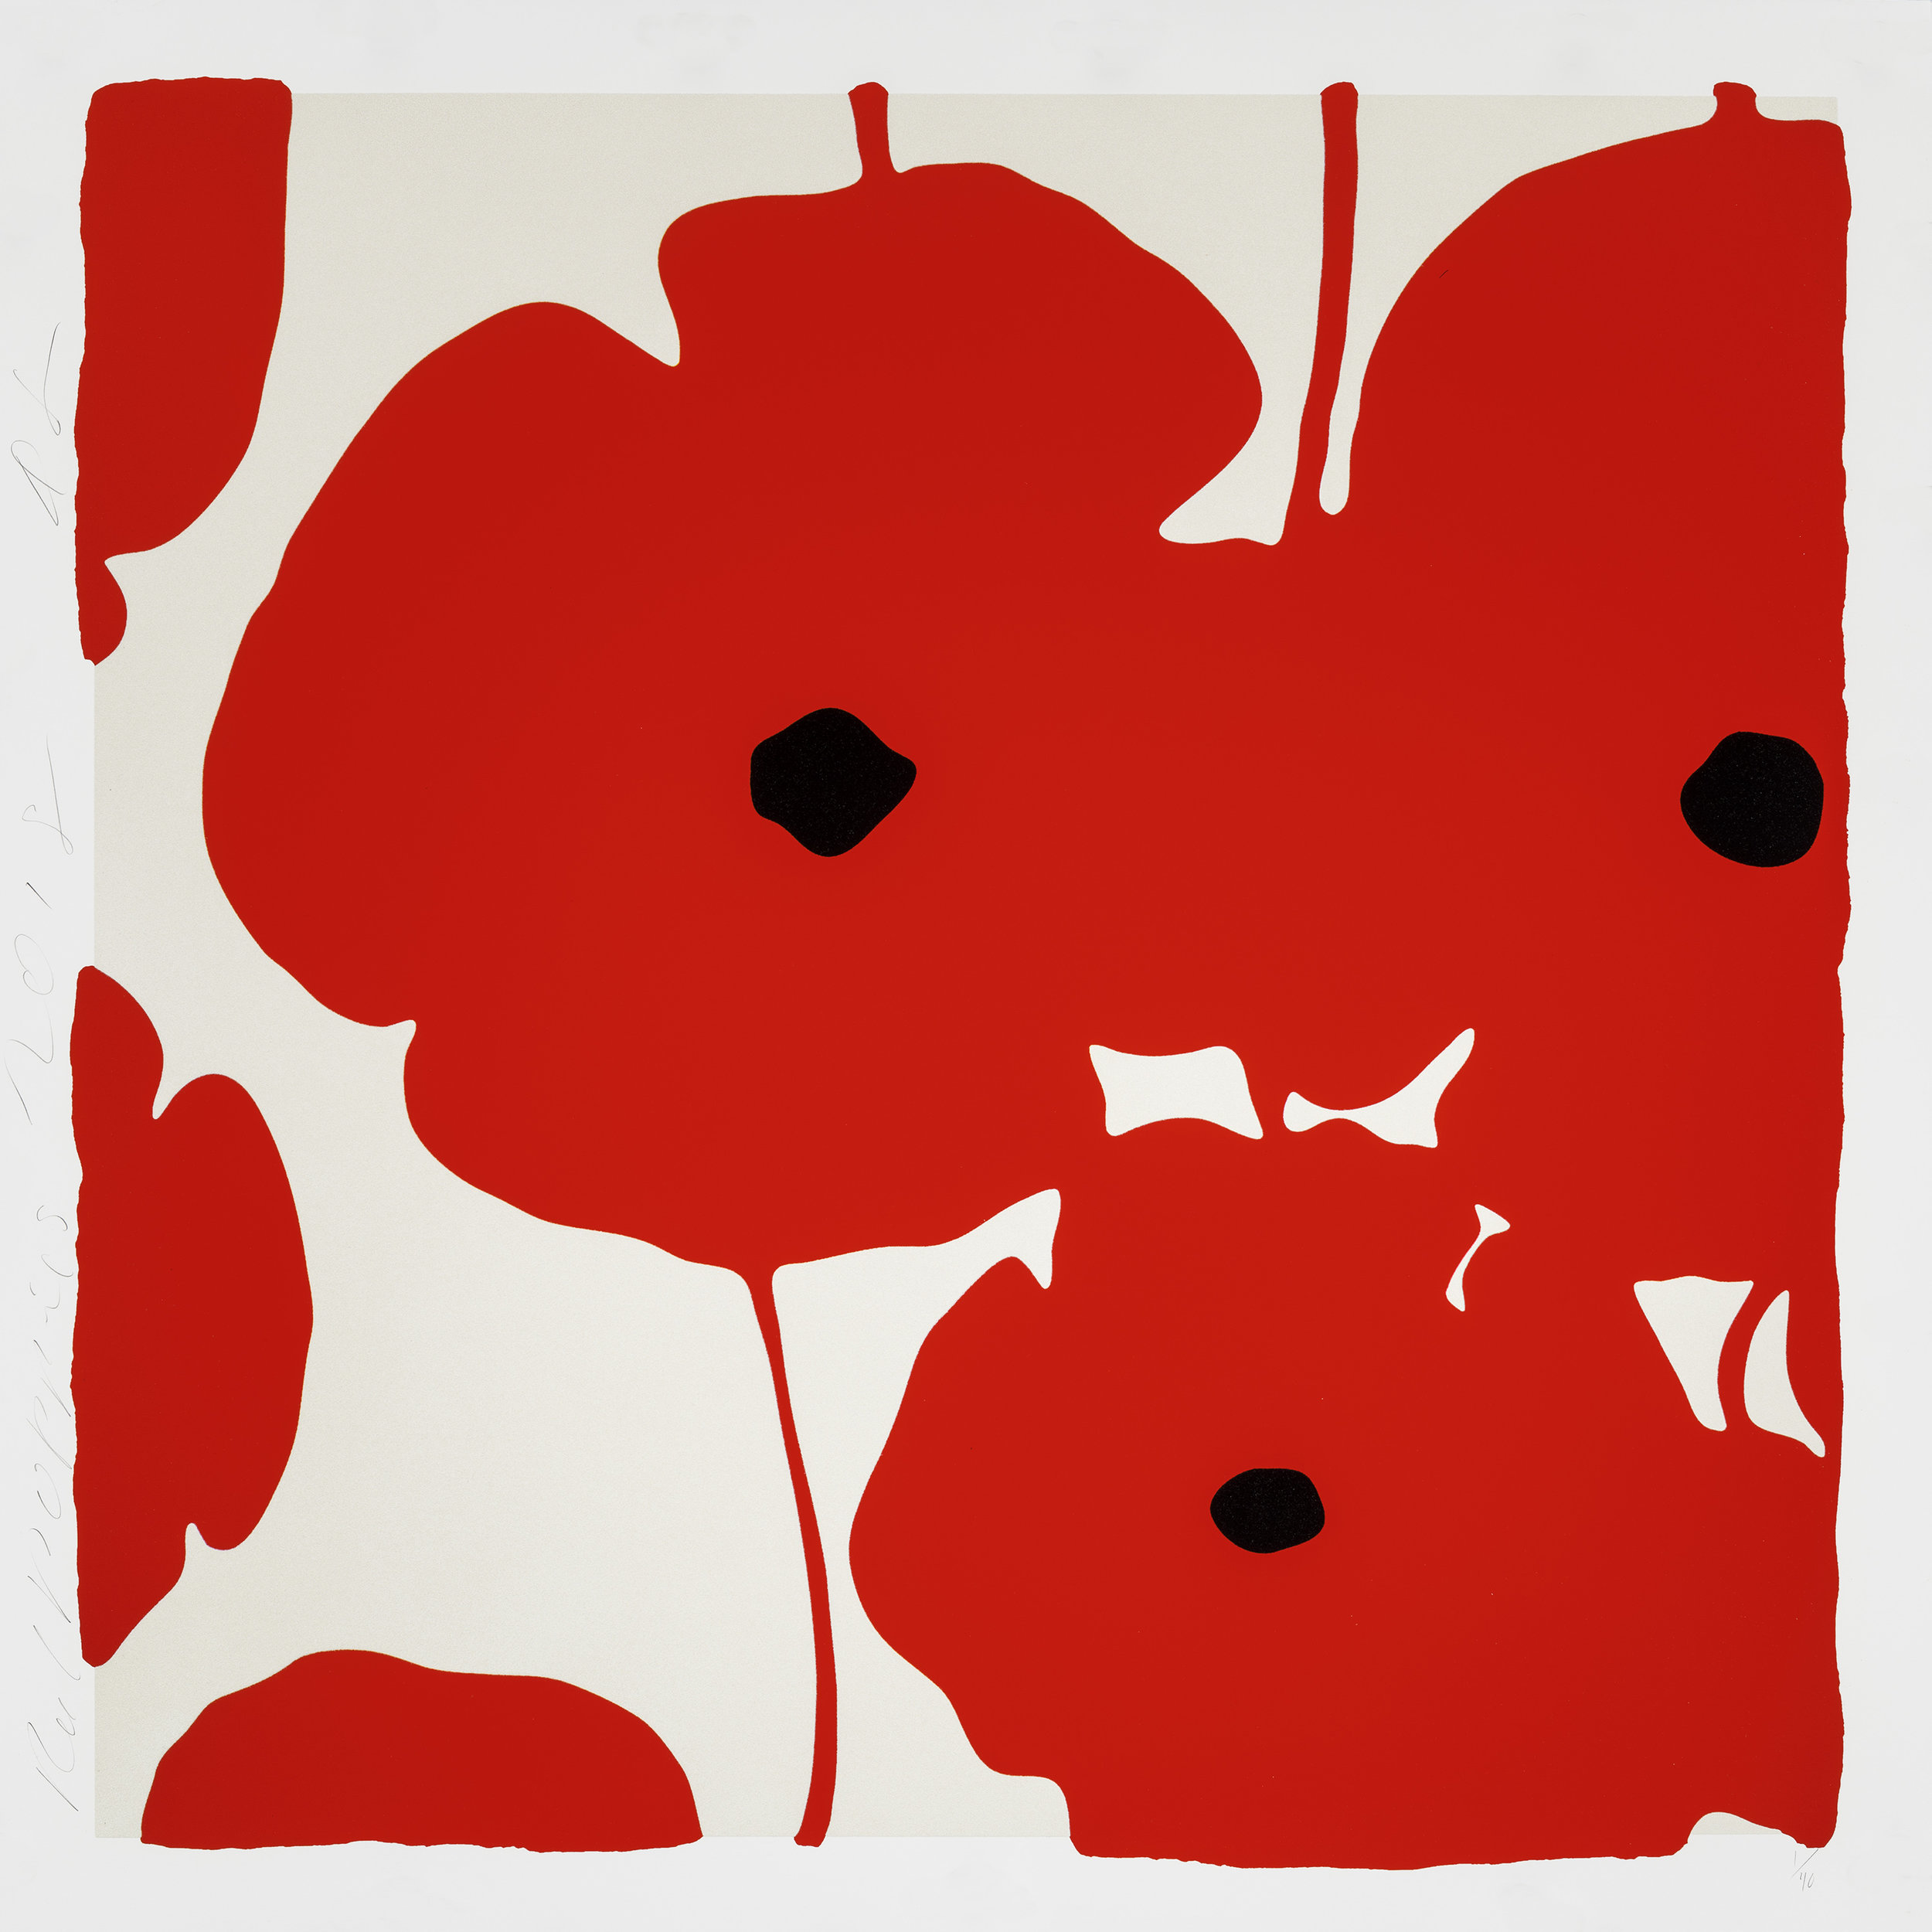 Donald Sultan  Red   Poppies,  2018 Color silkscreen with over-printed flocking 39 x 39 in.  edition of 40